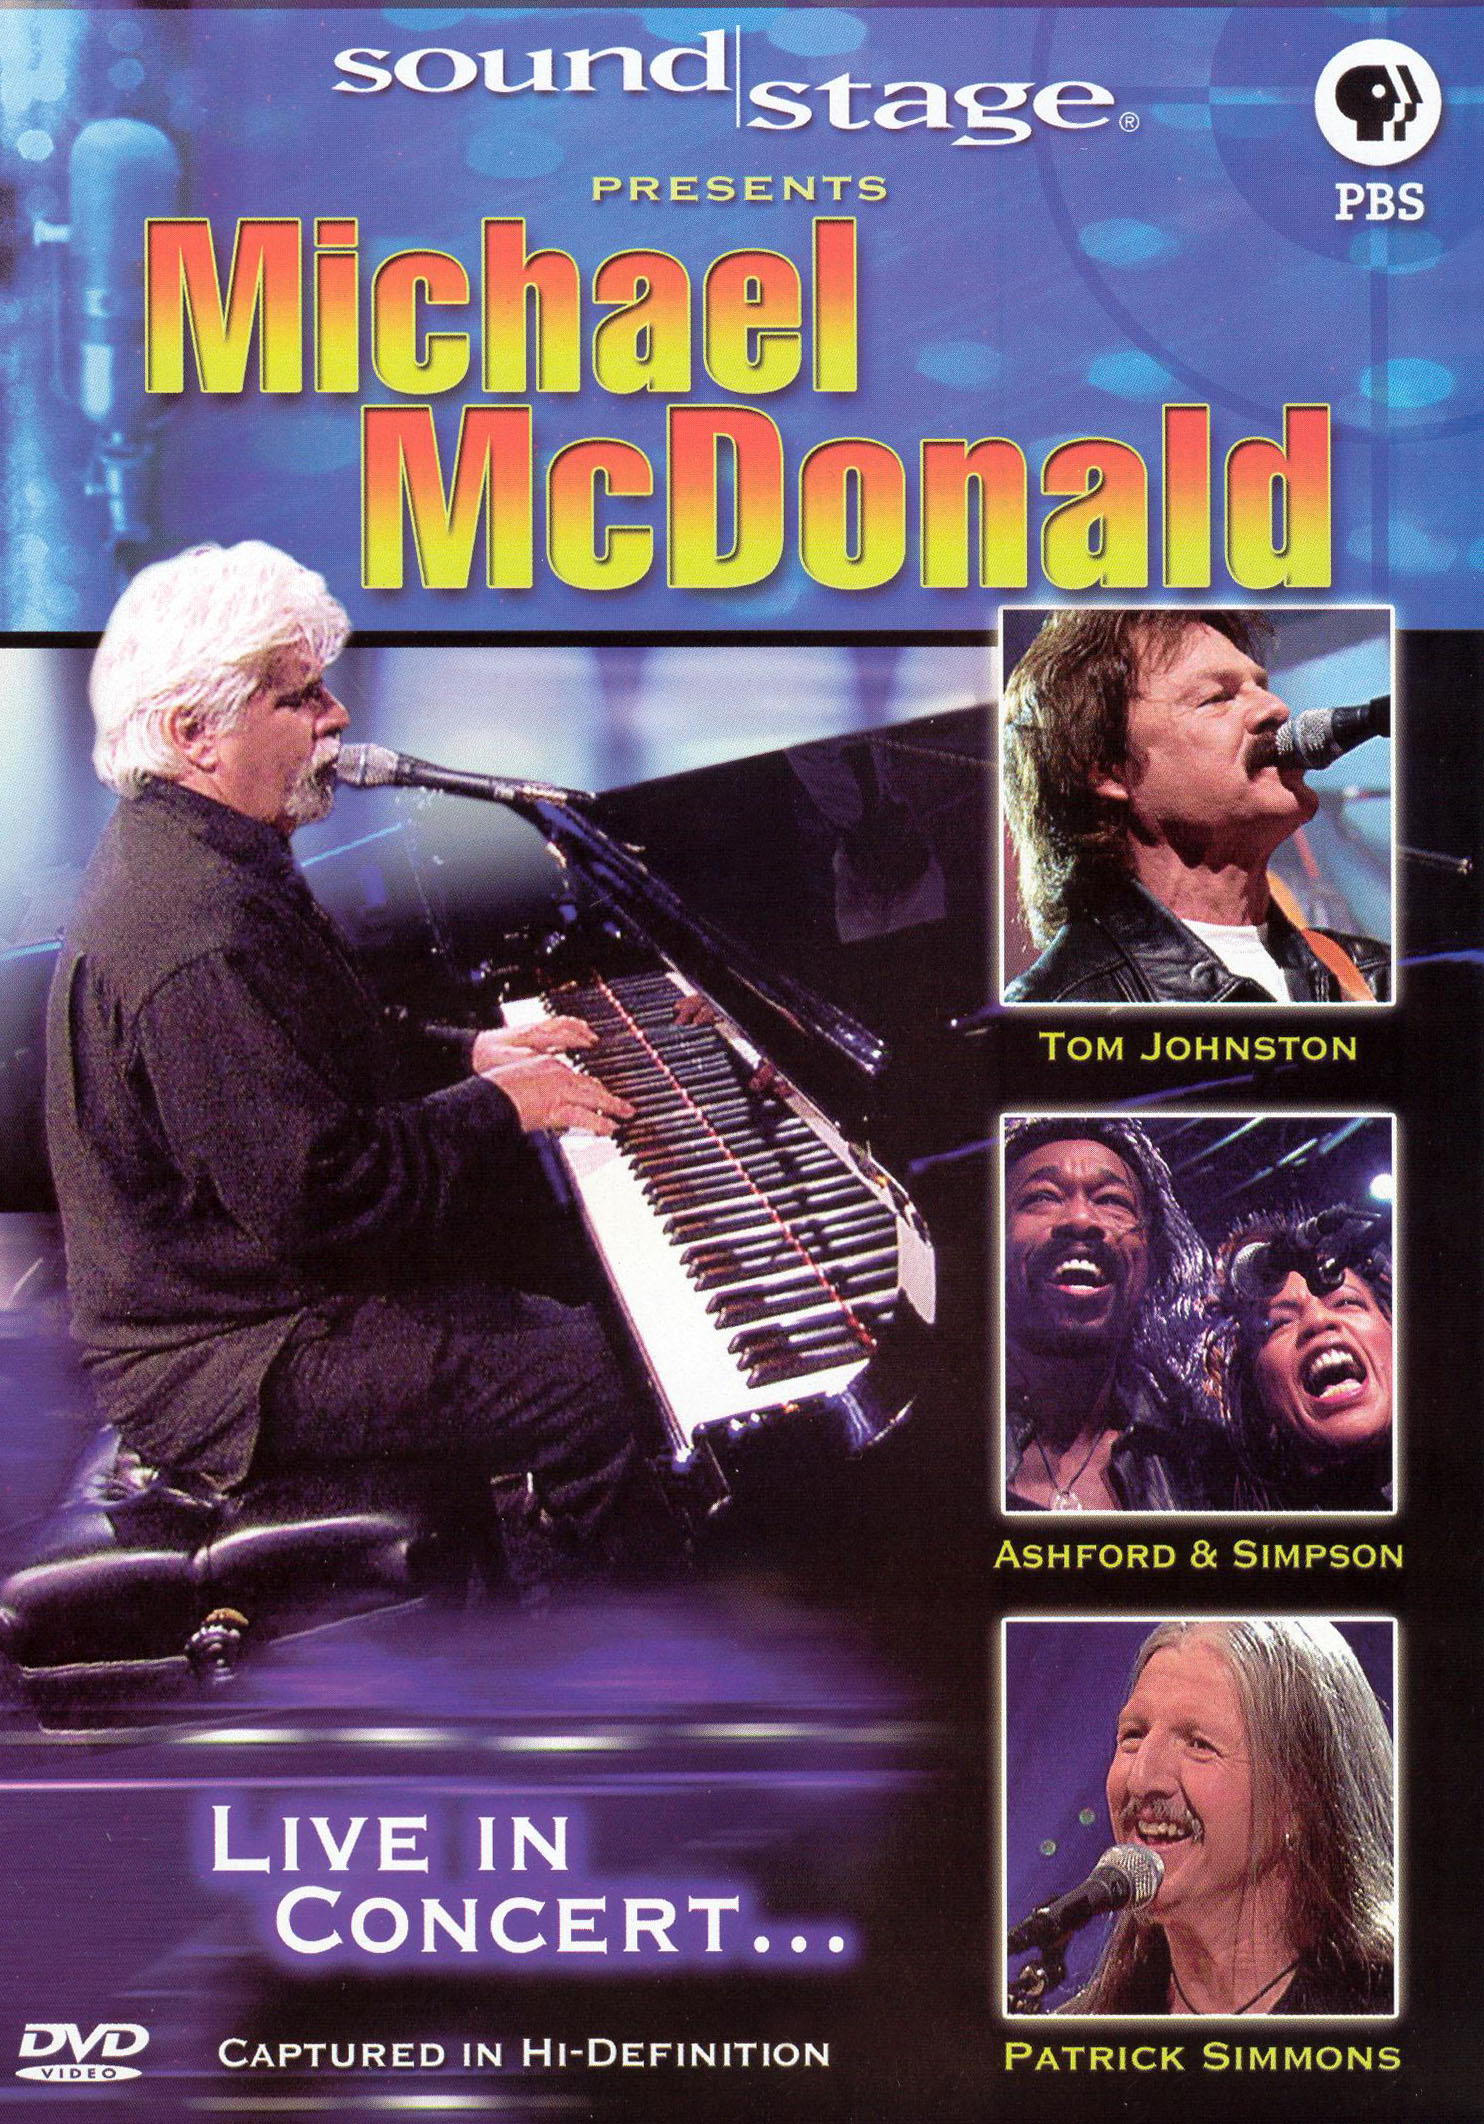 Soundstage: Michael McDonald and Special Guests